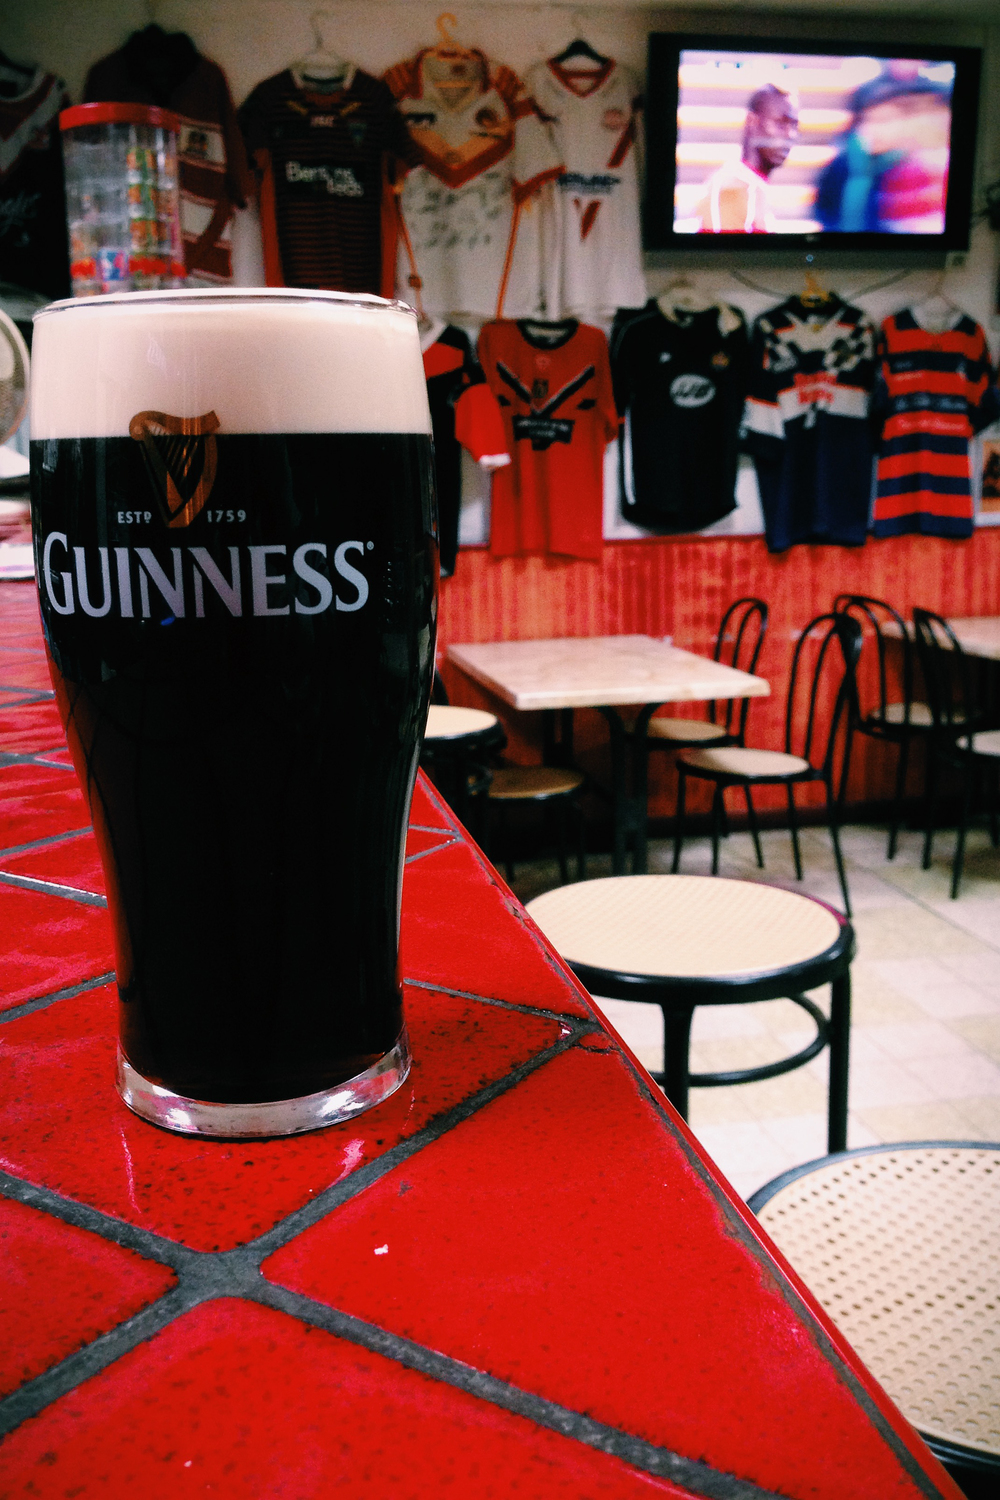 Guinness and Balotelli. Villeneuve-Minervois